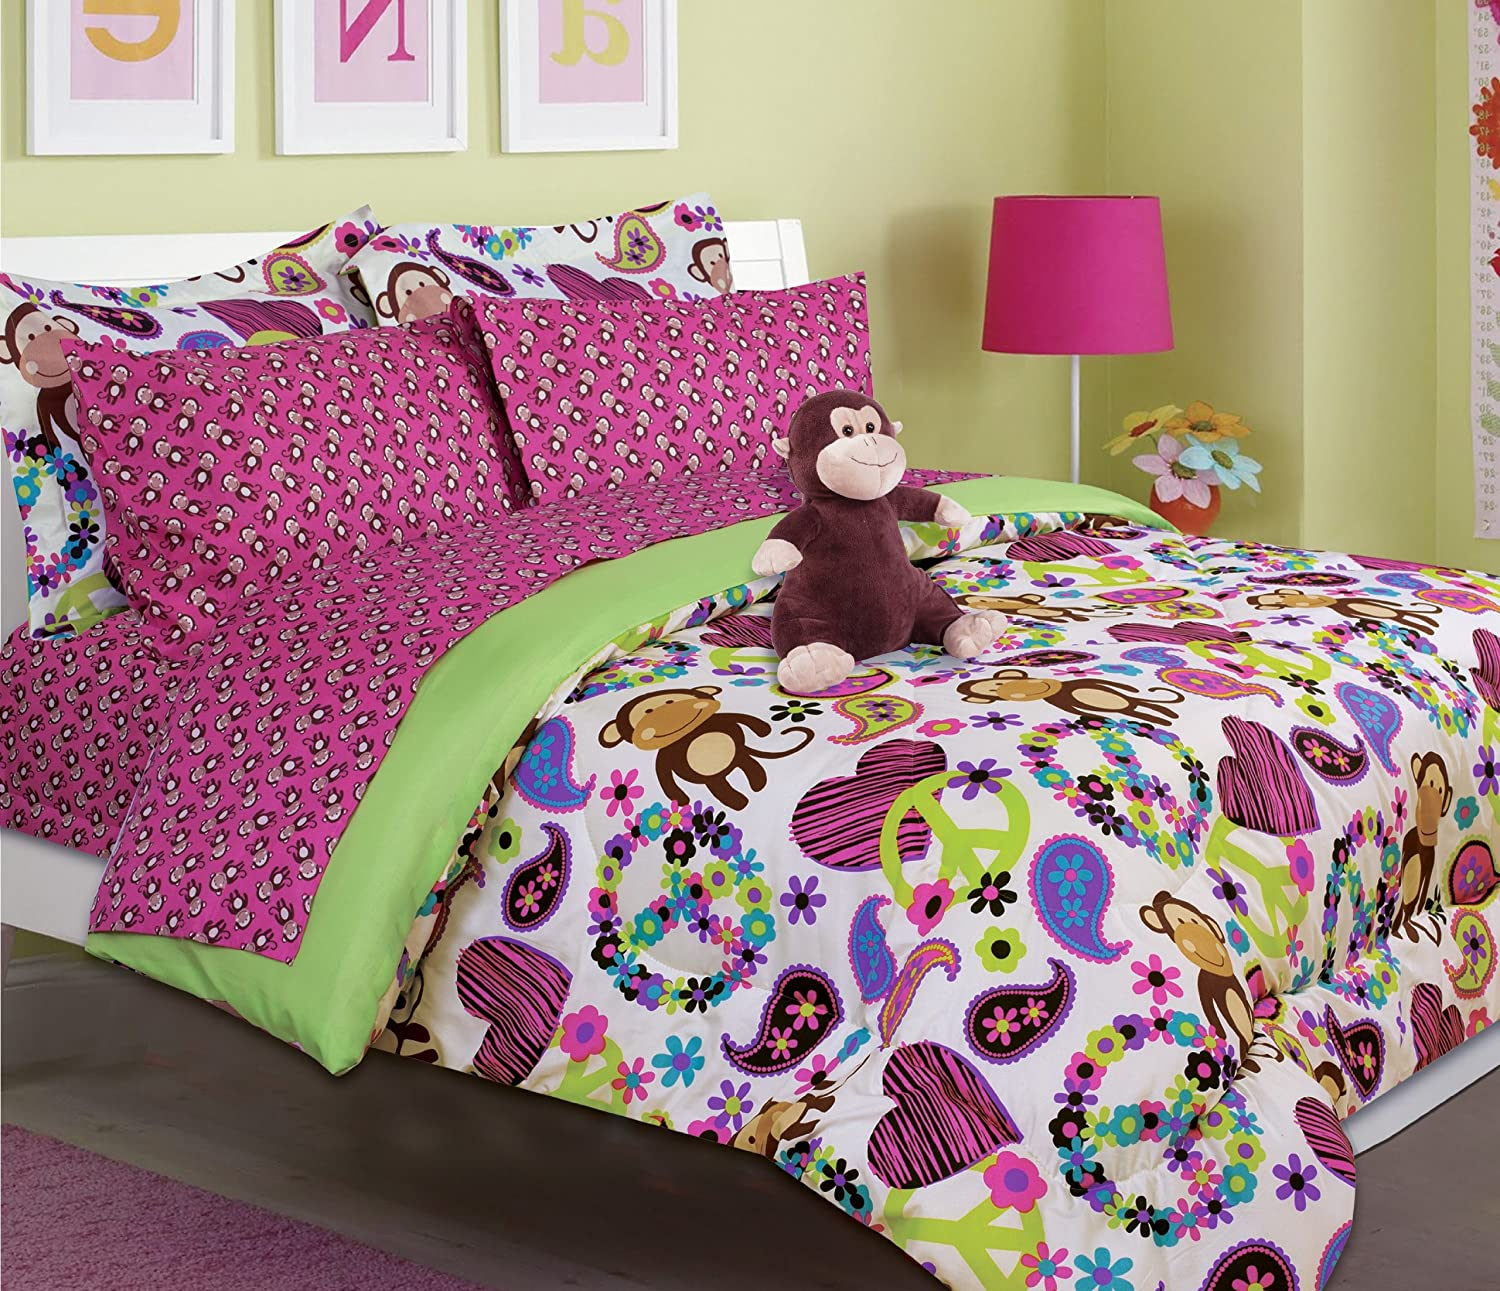 amazoncom girl's peace love and monkey print comforter set with  - amazoncom girl's peace love and monkey print comforter set with sheetset (twin size) home  kitchen